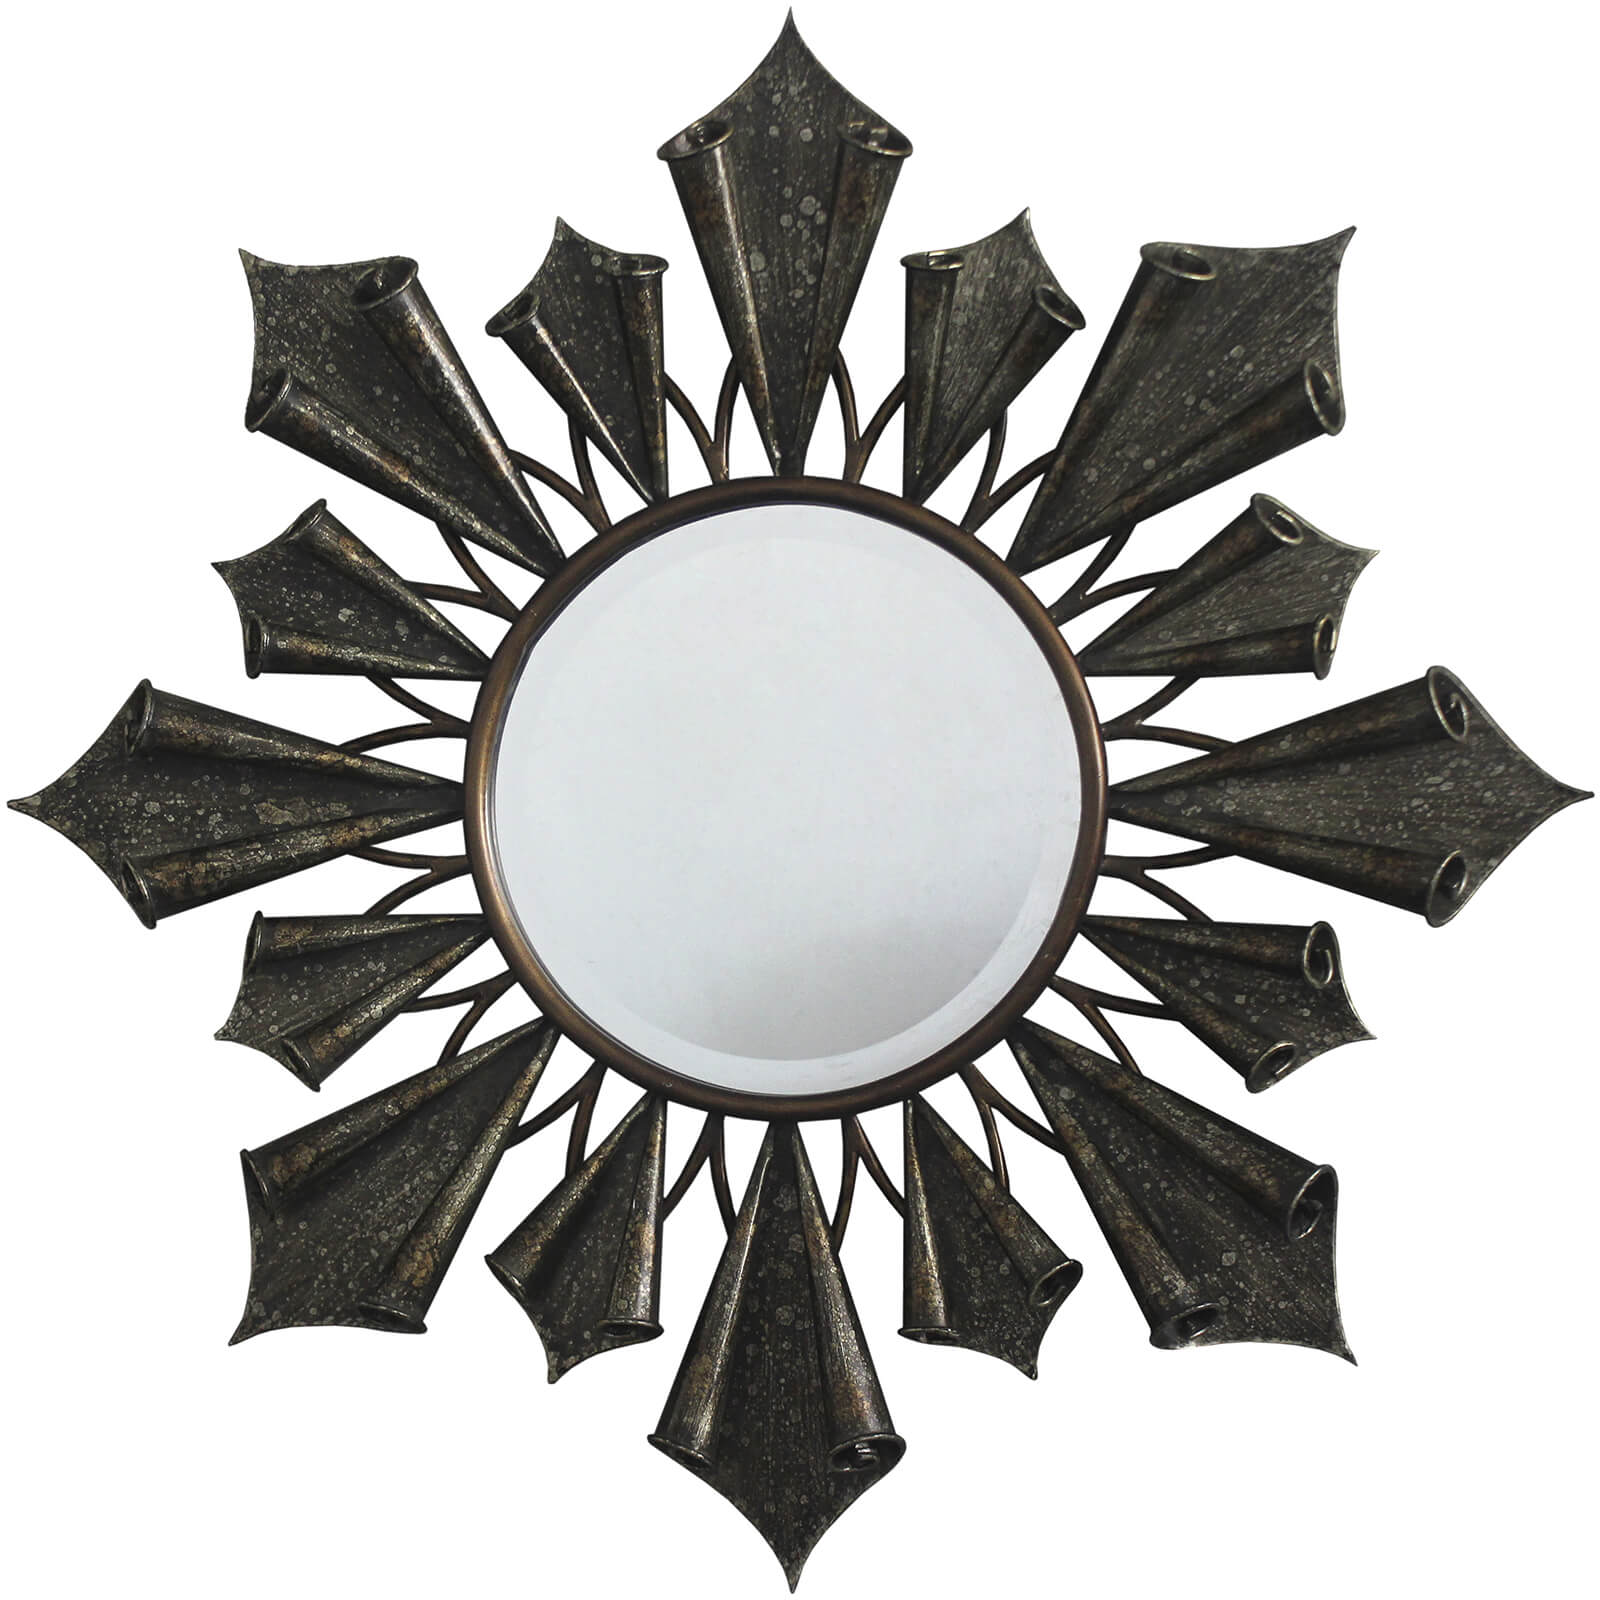 Premier Housewares Verona Starburst Wall Mirror - Antique Gold